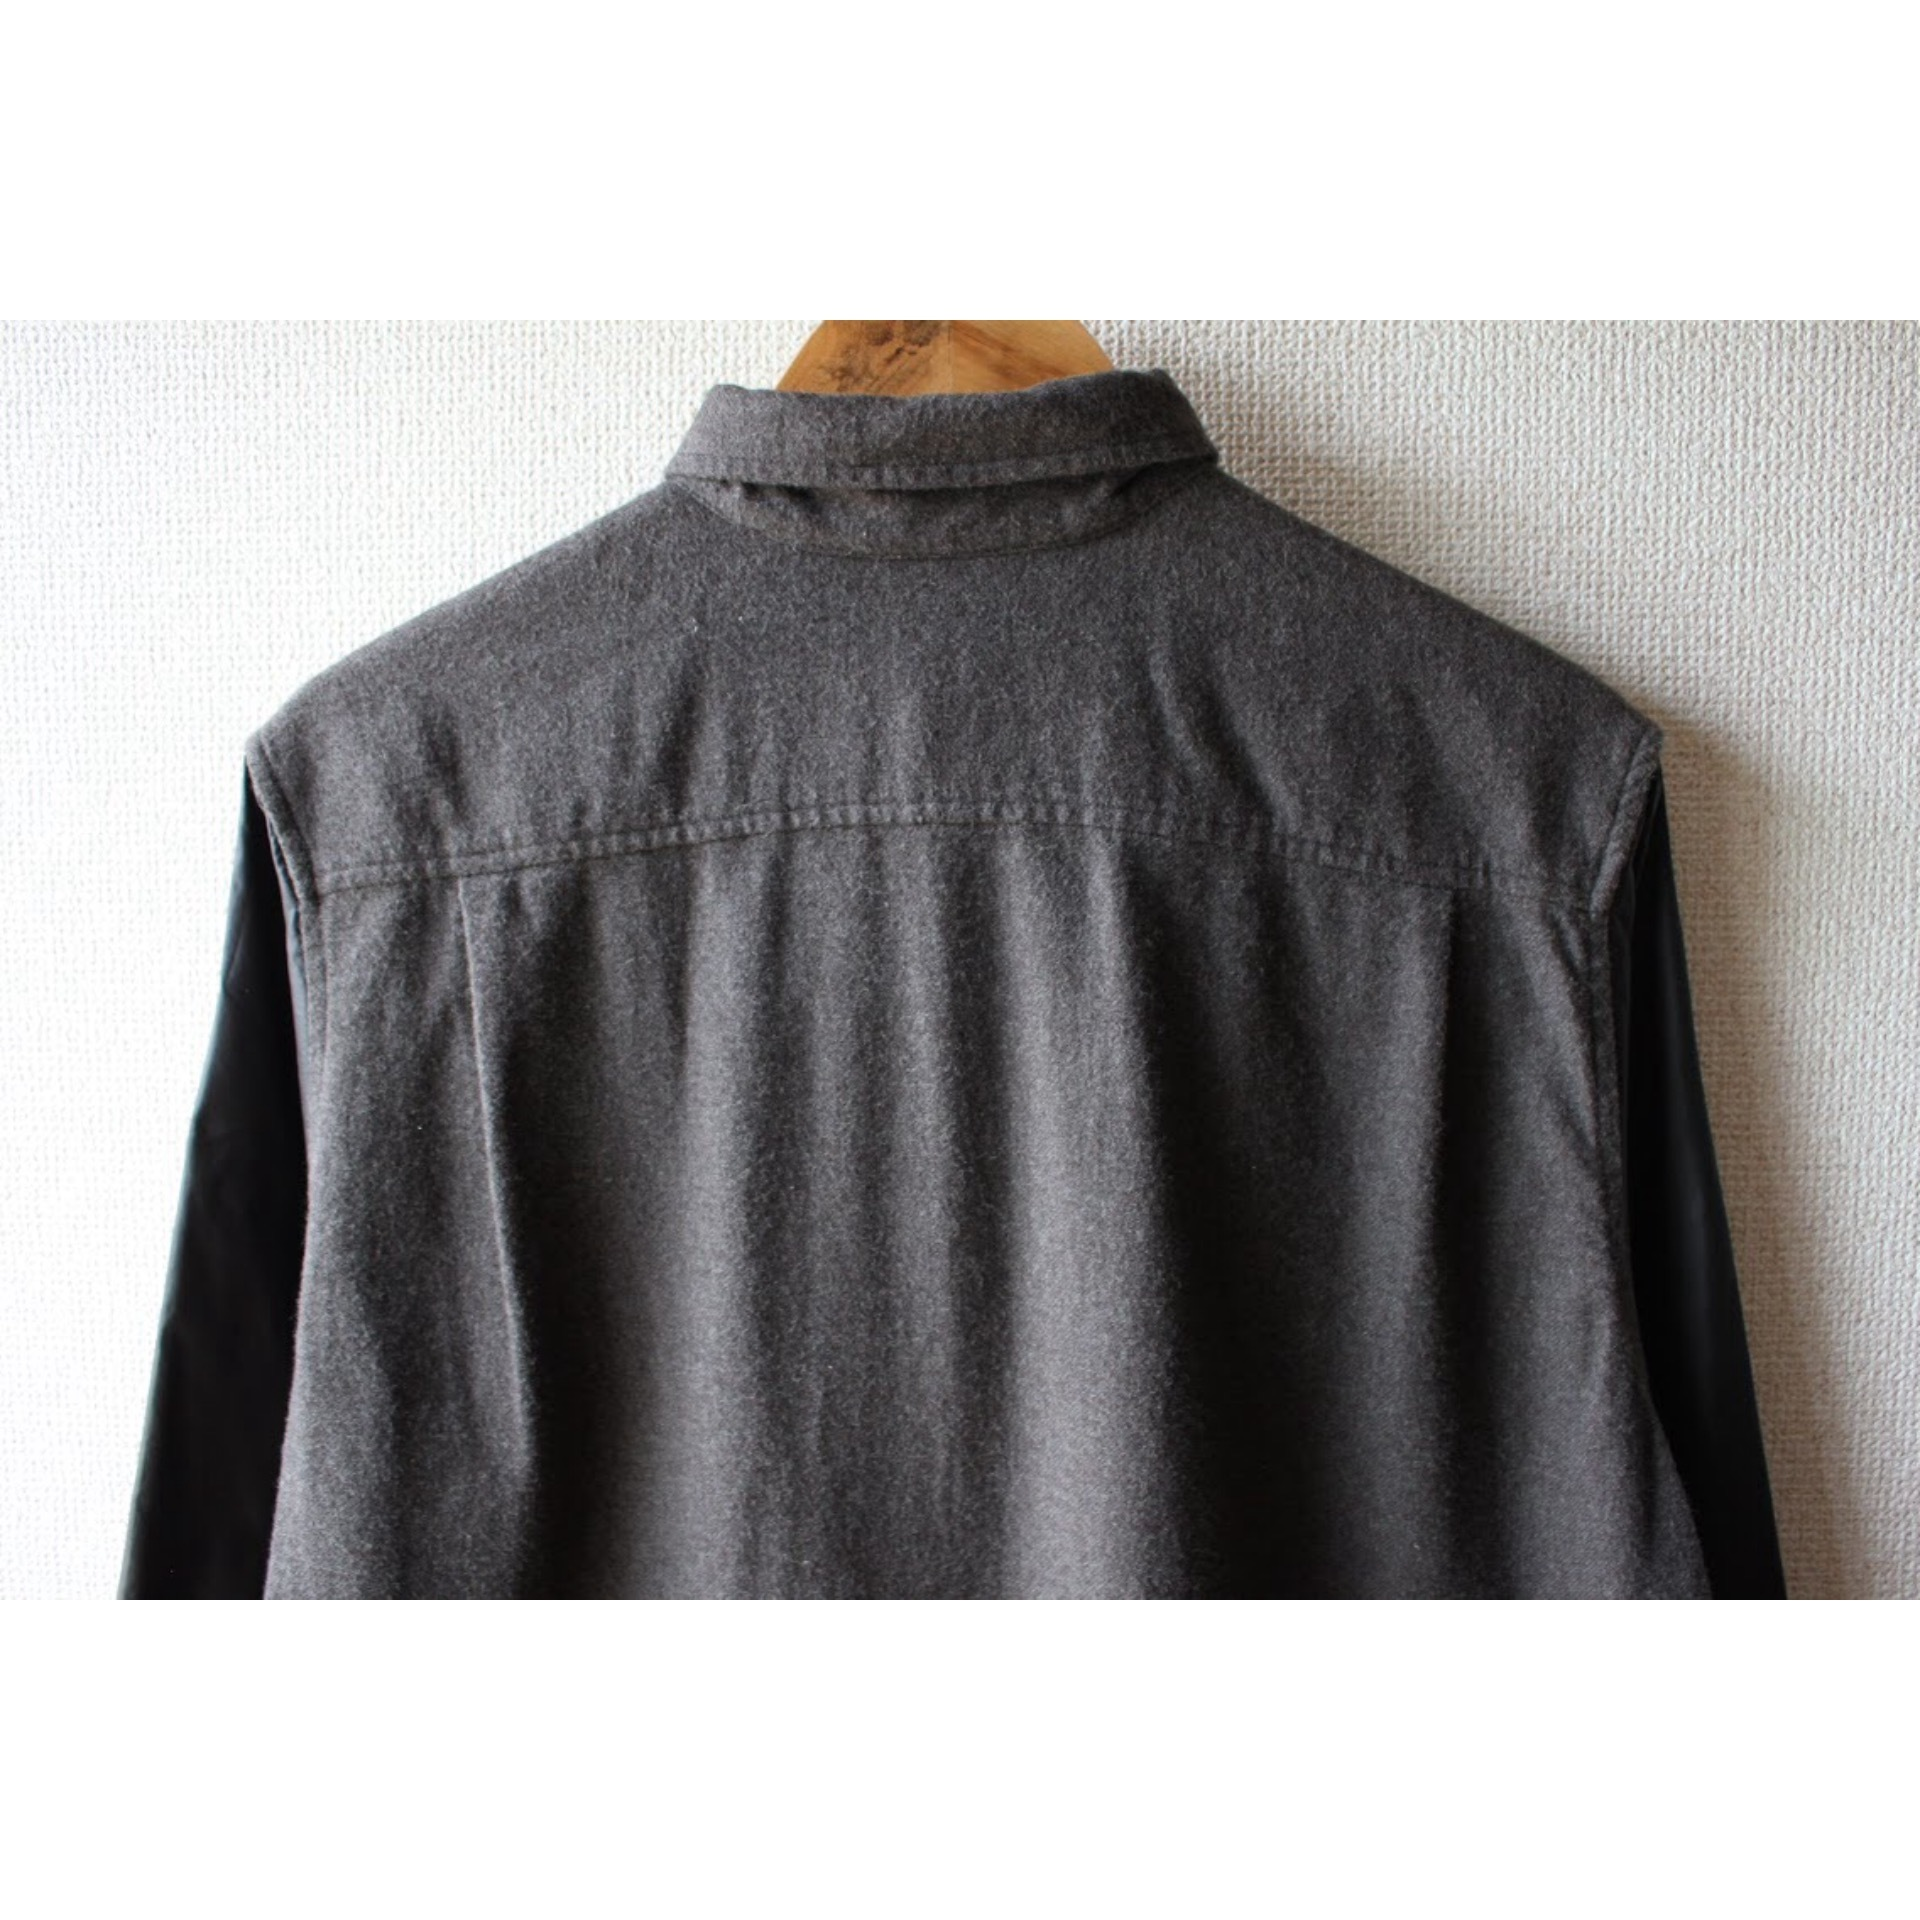 Vintage nylon sleeve shirt by DKNY